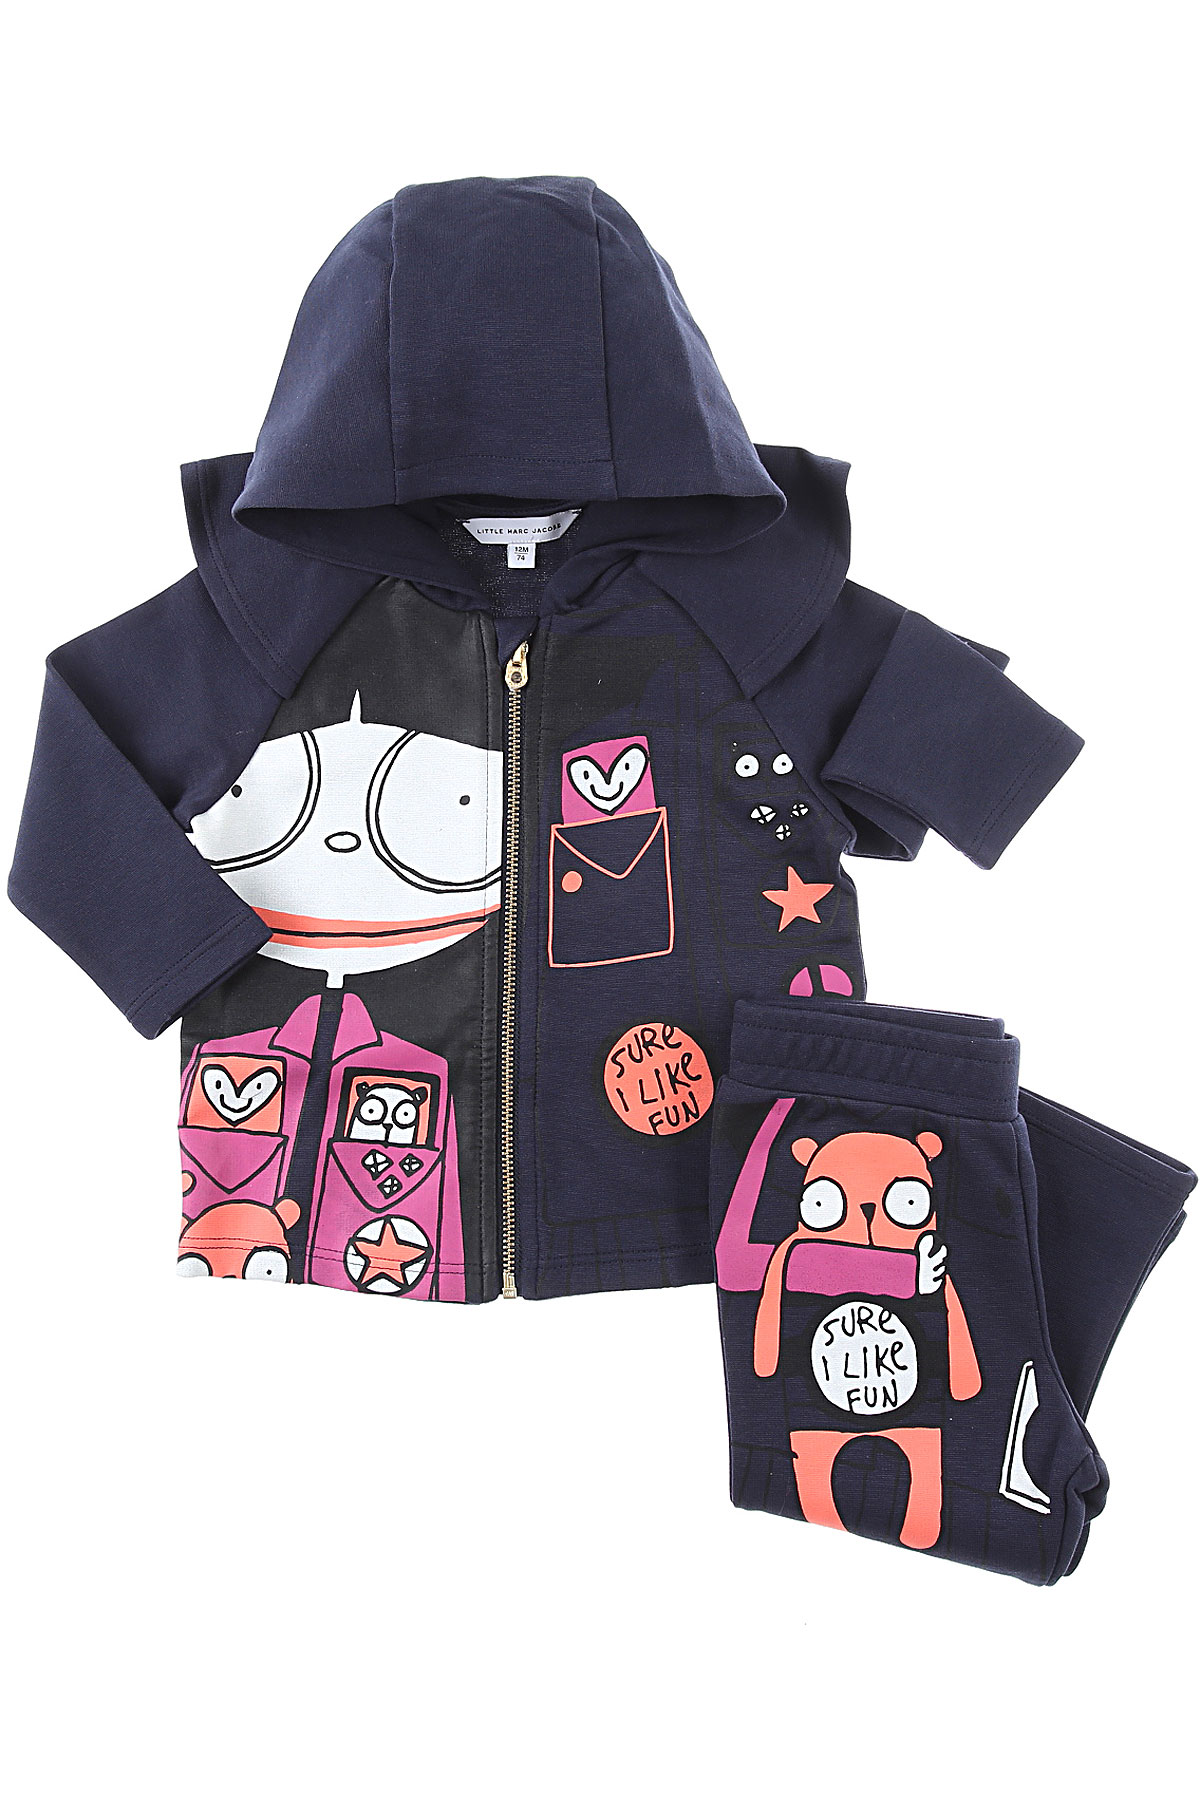 Marc Jacobs Baby Sets for Girls On Sale, Midnight Blue, Cotton, 2019, 12M 18M